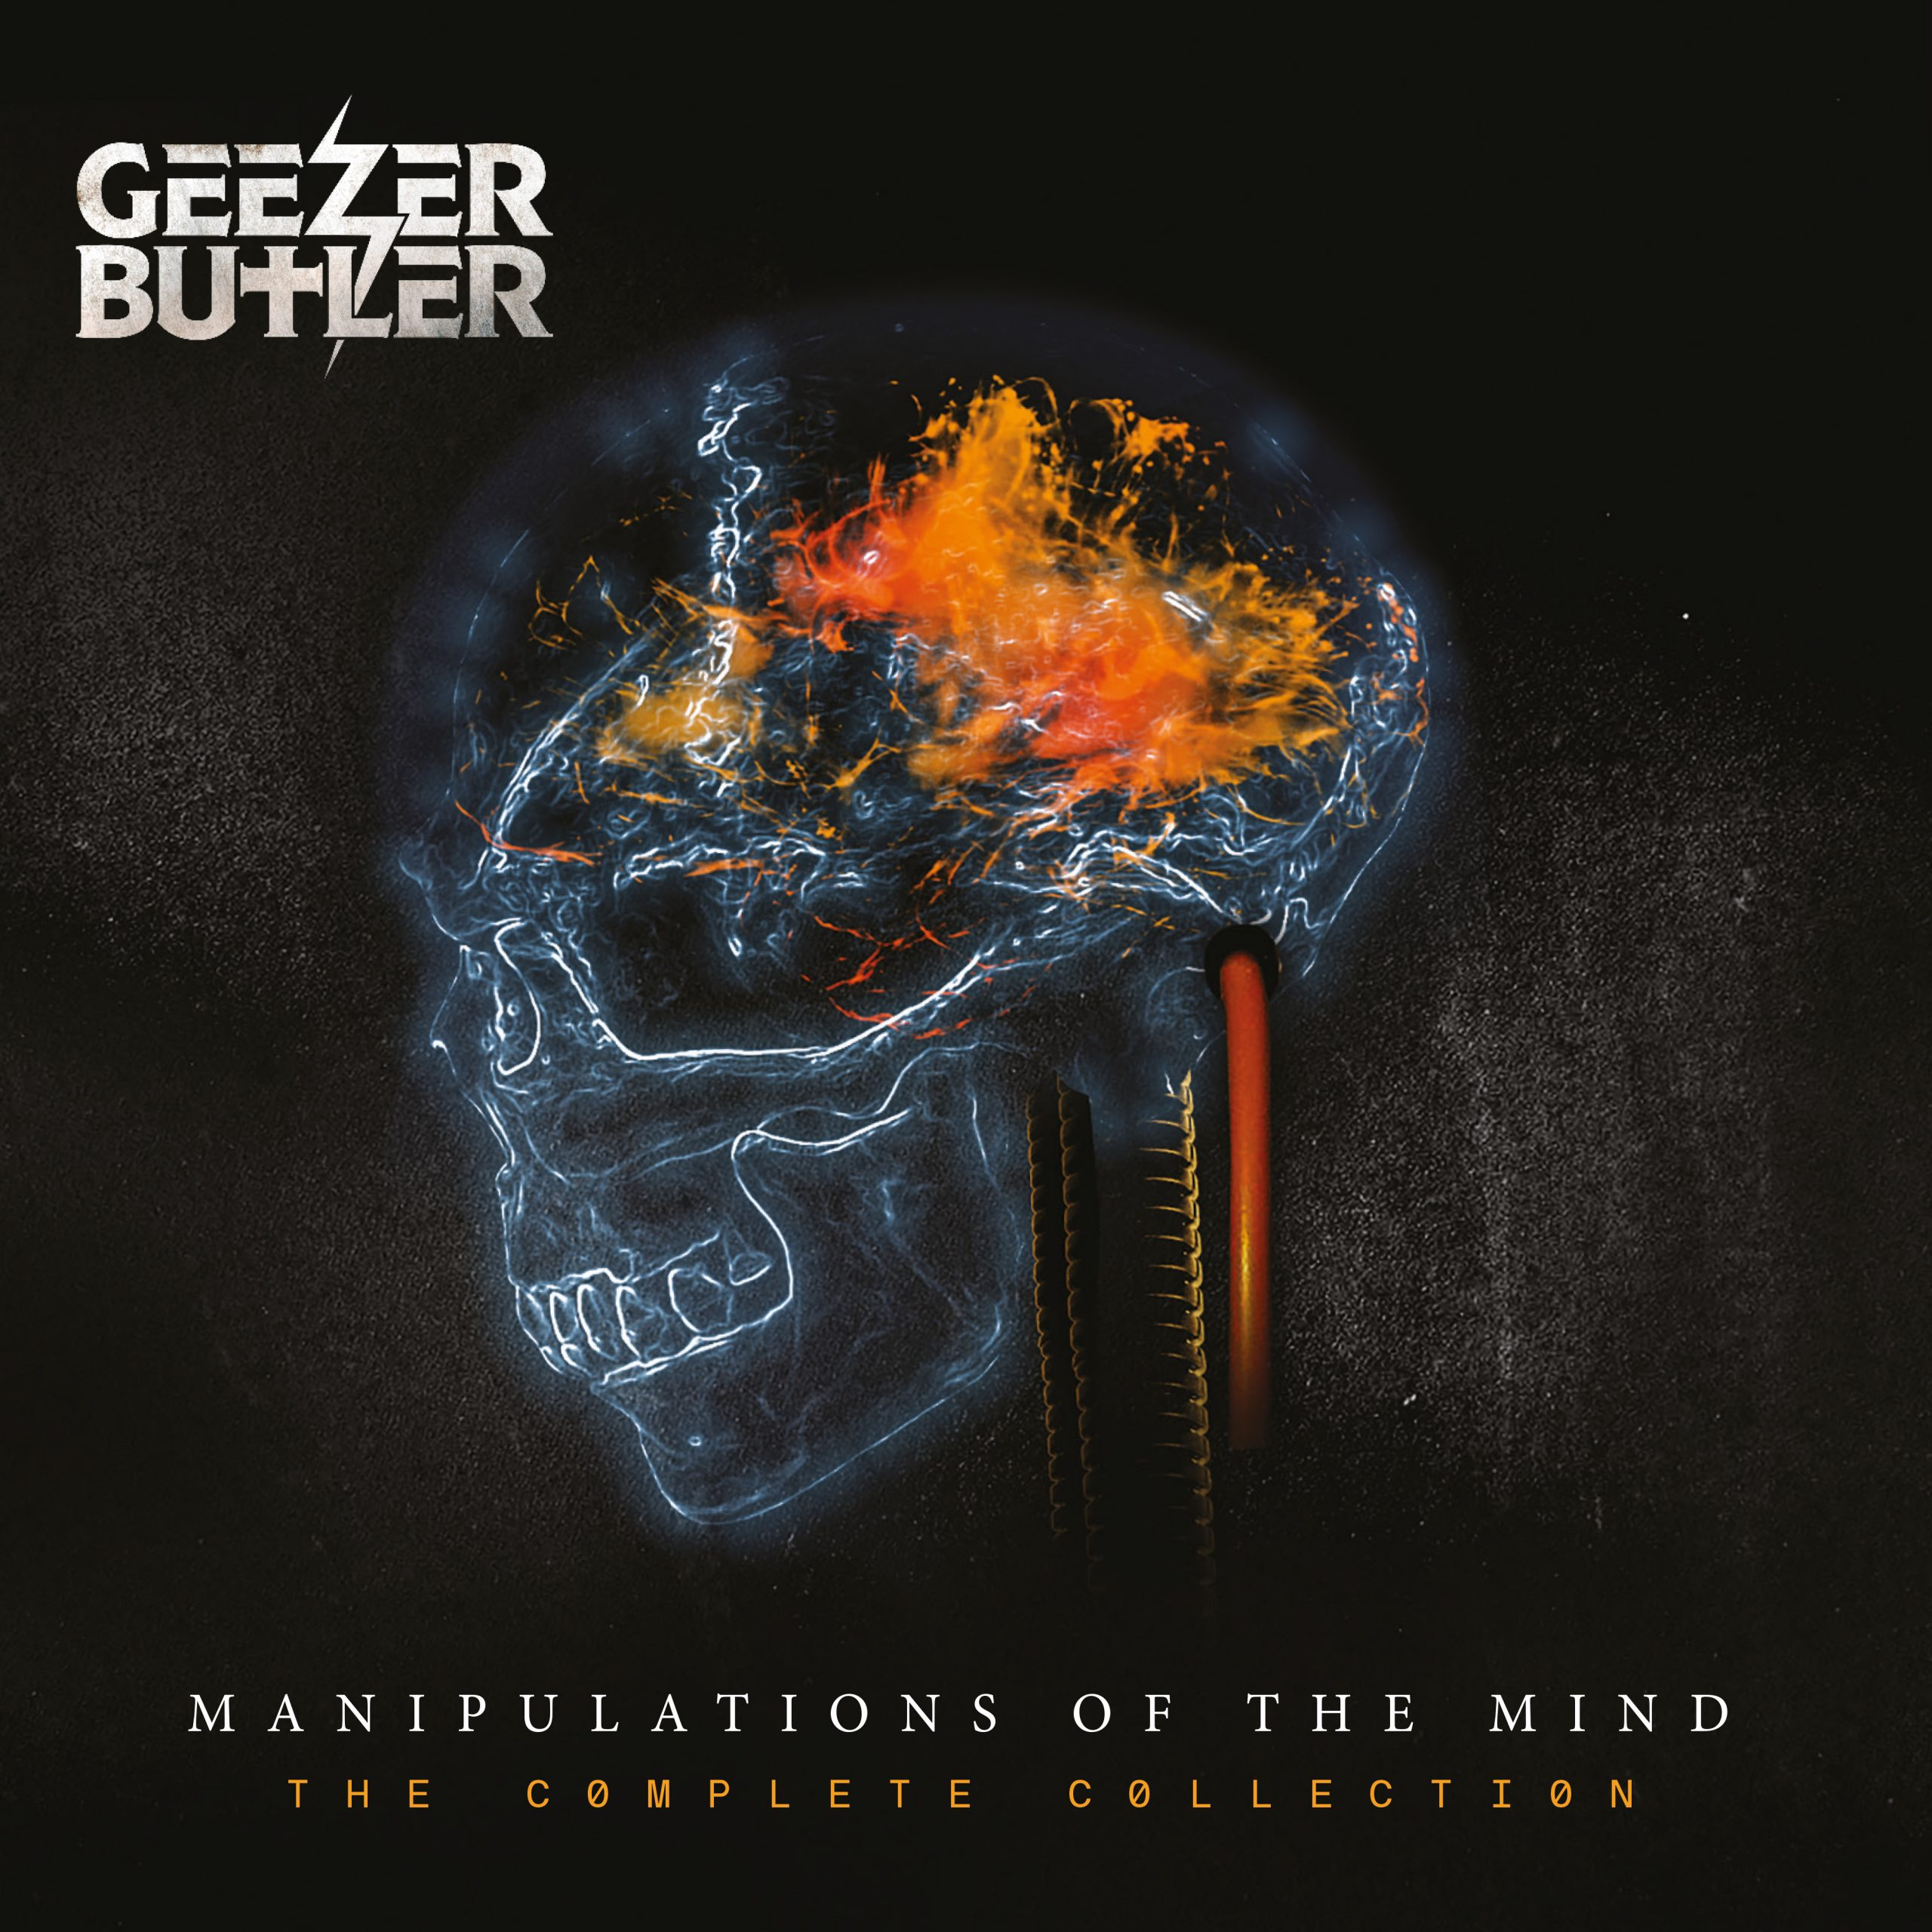 geezer-butler-manipulations-of-the-mind-the-complete-collection-the-very-best-of-album-review